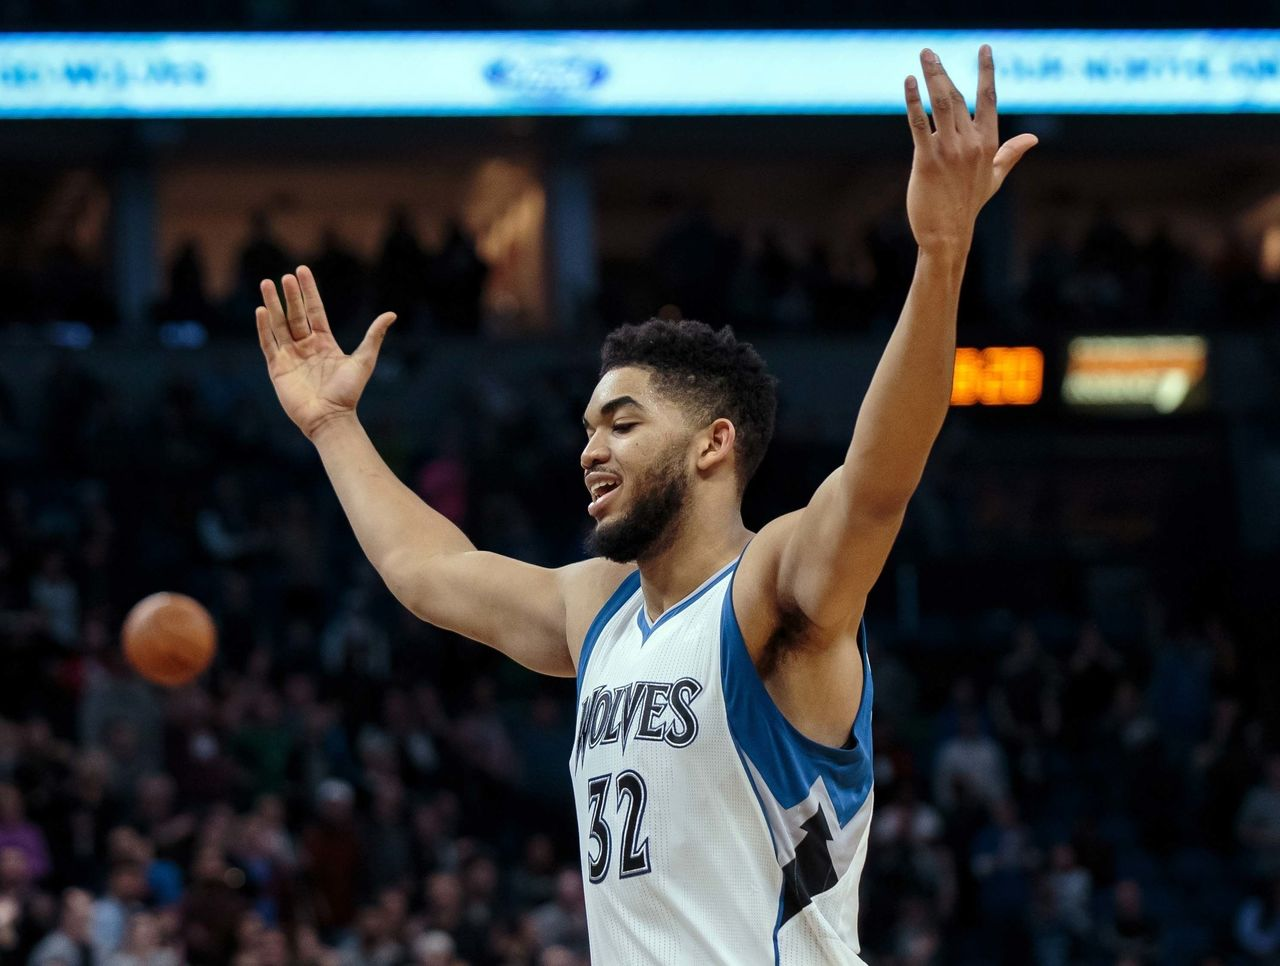 Cropped 2017 01 23t030322z 302166694 nocid rtrmadp 3 nba denver nuggets at minnesota timberwolves